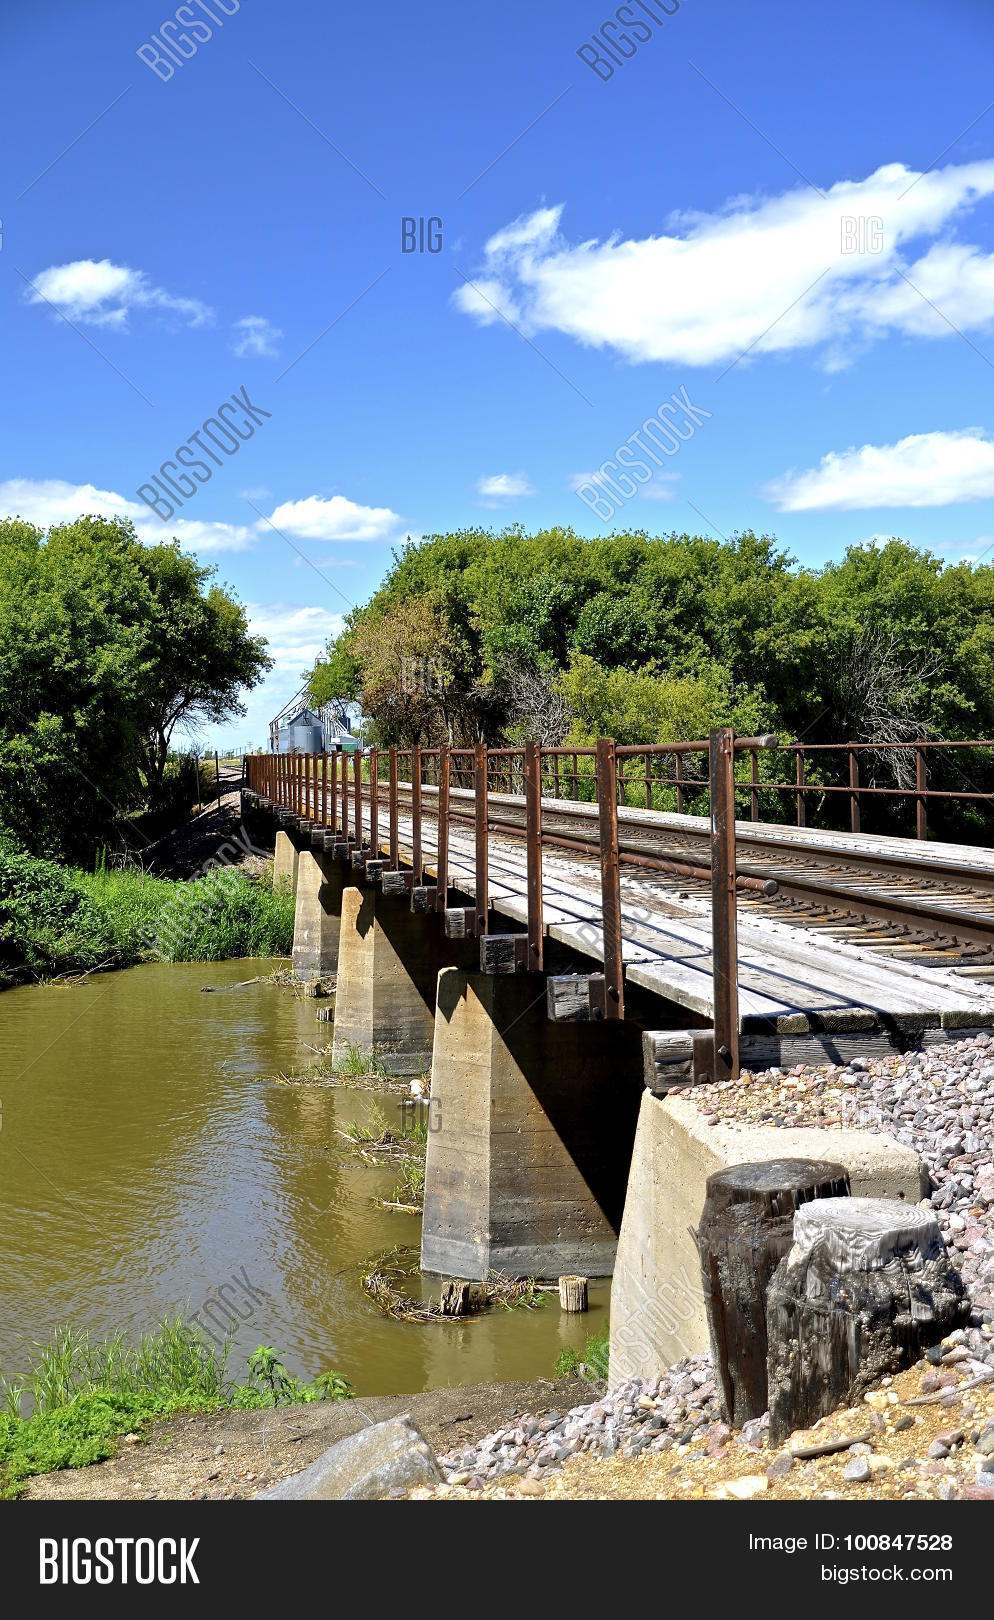 Old Wooden Rural Image & Photo (Free Trial) | Bigstock